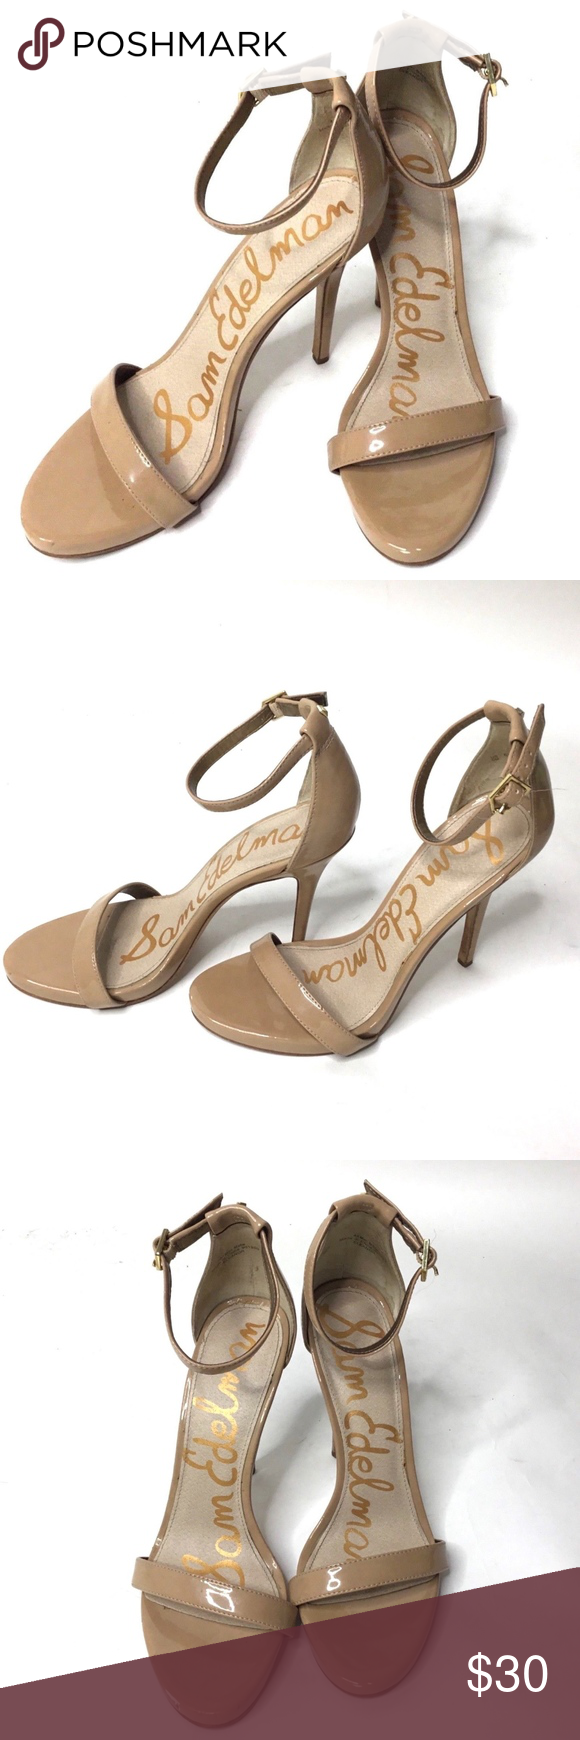 281f998c69797c Sam Edelman AMEE Ankle Strap Nude Patent Heels Good pre-owned condition